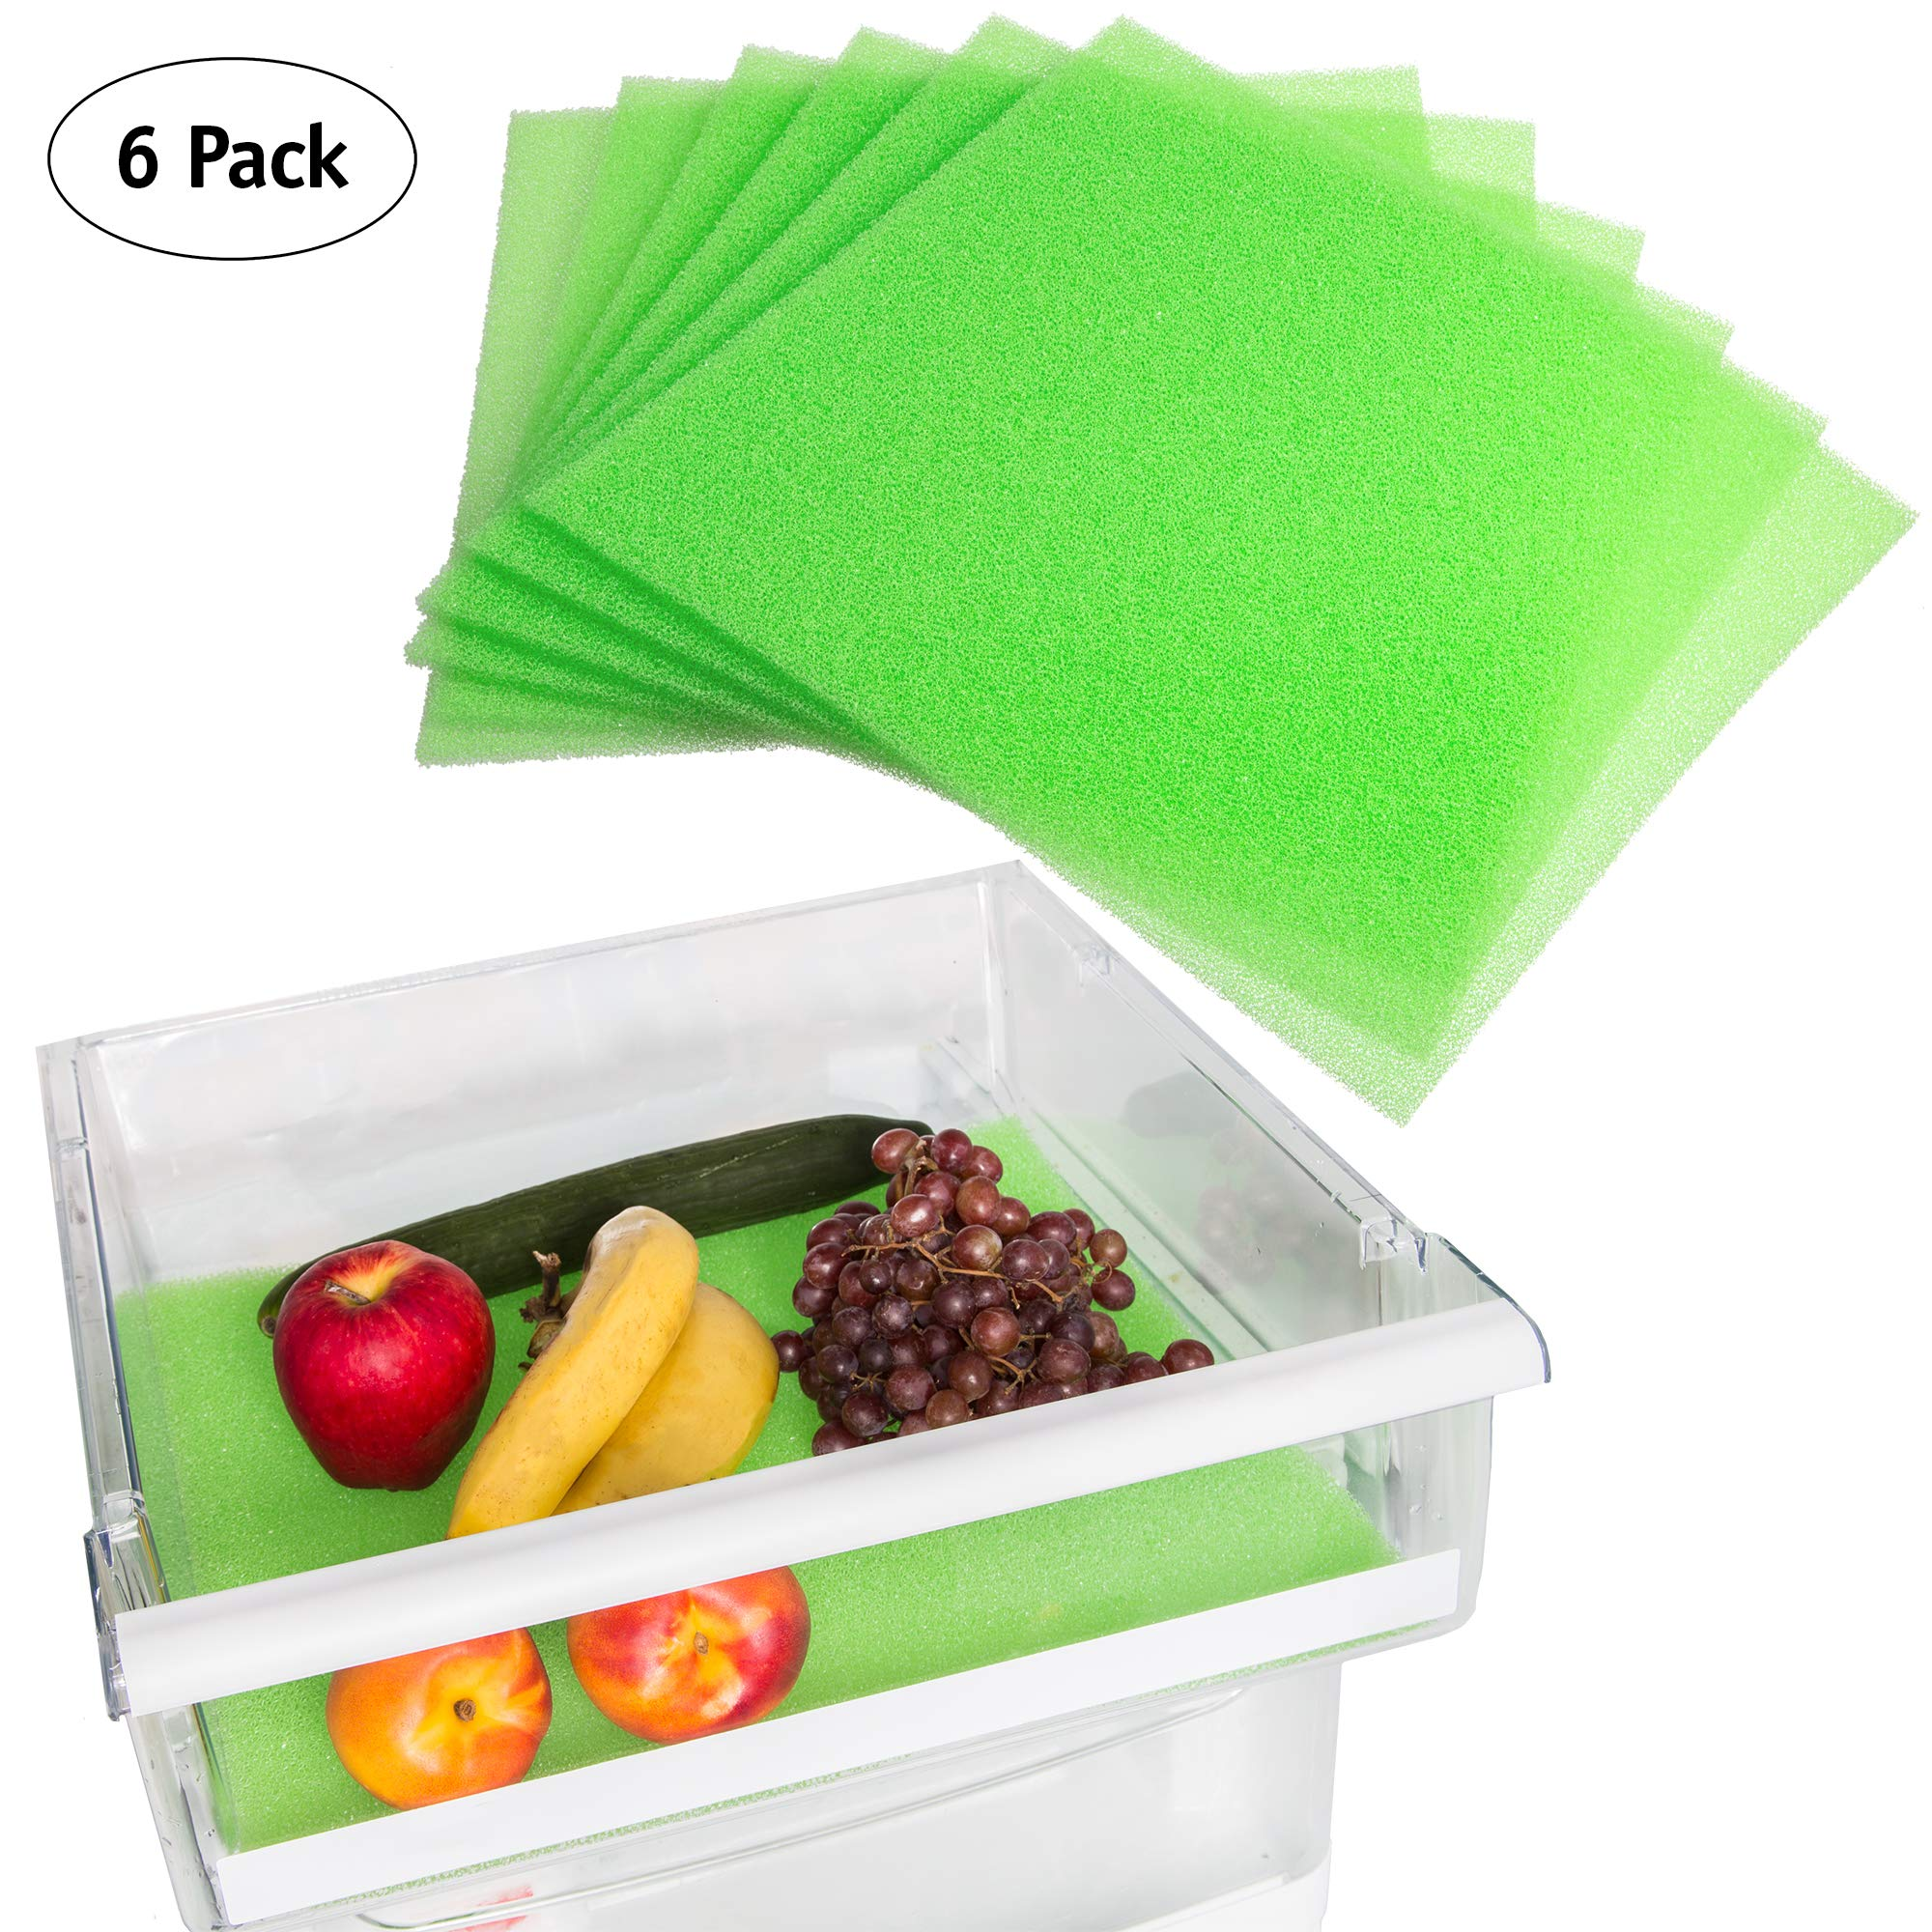 Fruit and Veggie Life Extender Liner by Tenquest 6-Pack, 15X14 Inch, Refrigerator Shelf - Produce Saver, Extends Life and Keeps Refrigerator Fresh Prevents Spoilage -Instructions Included …